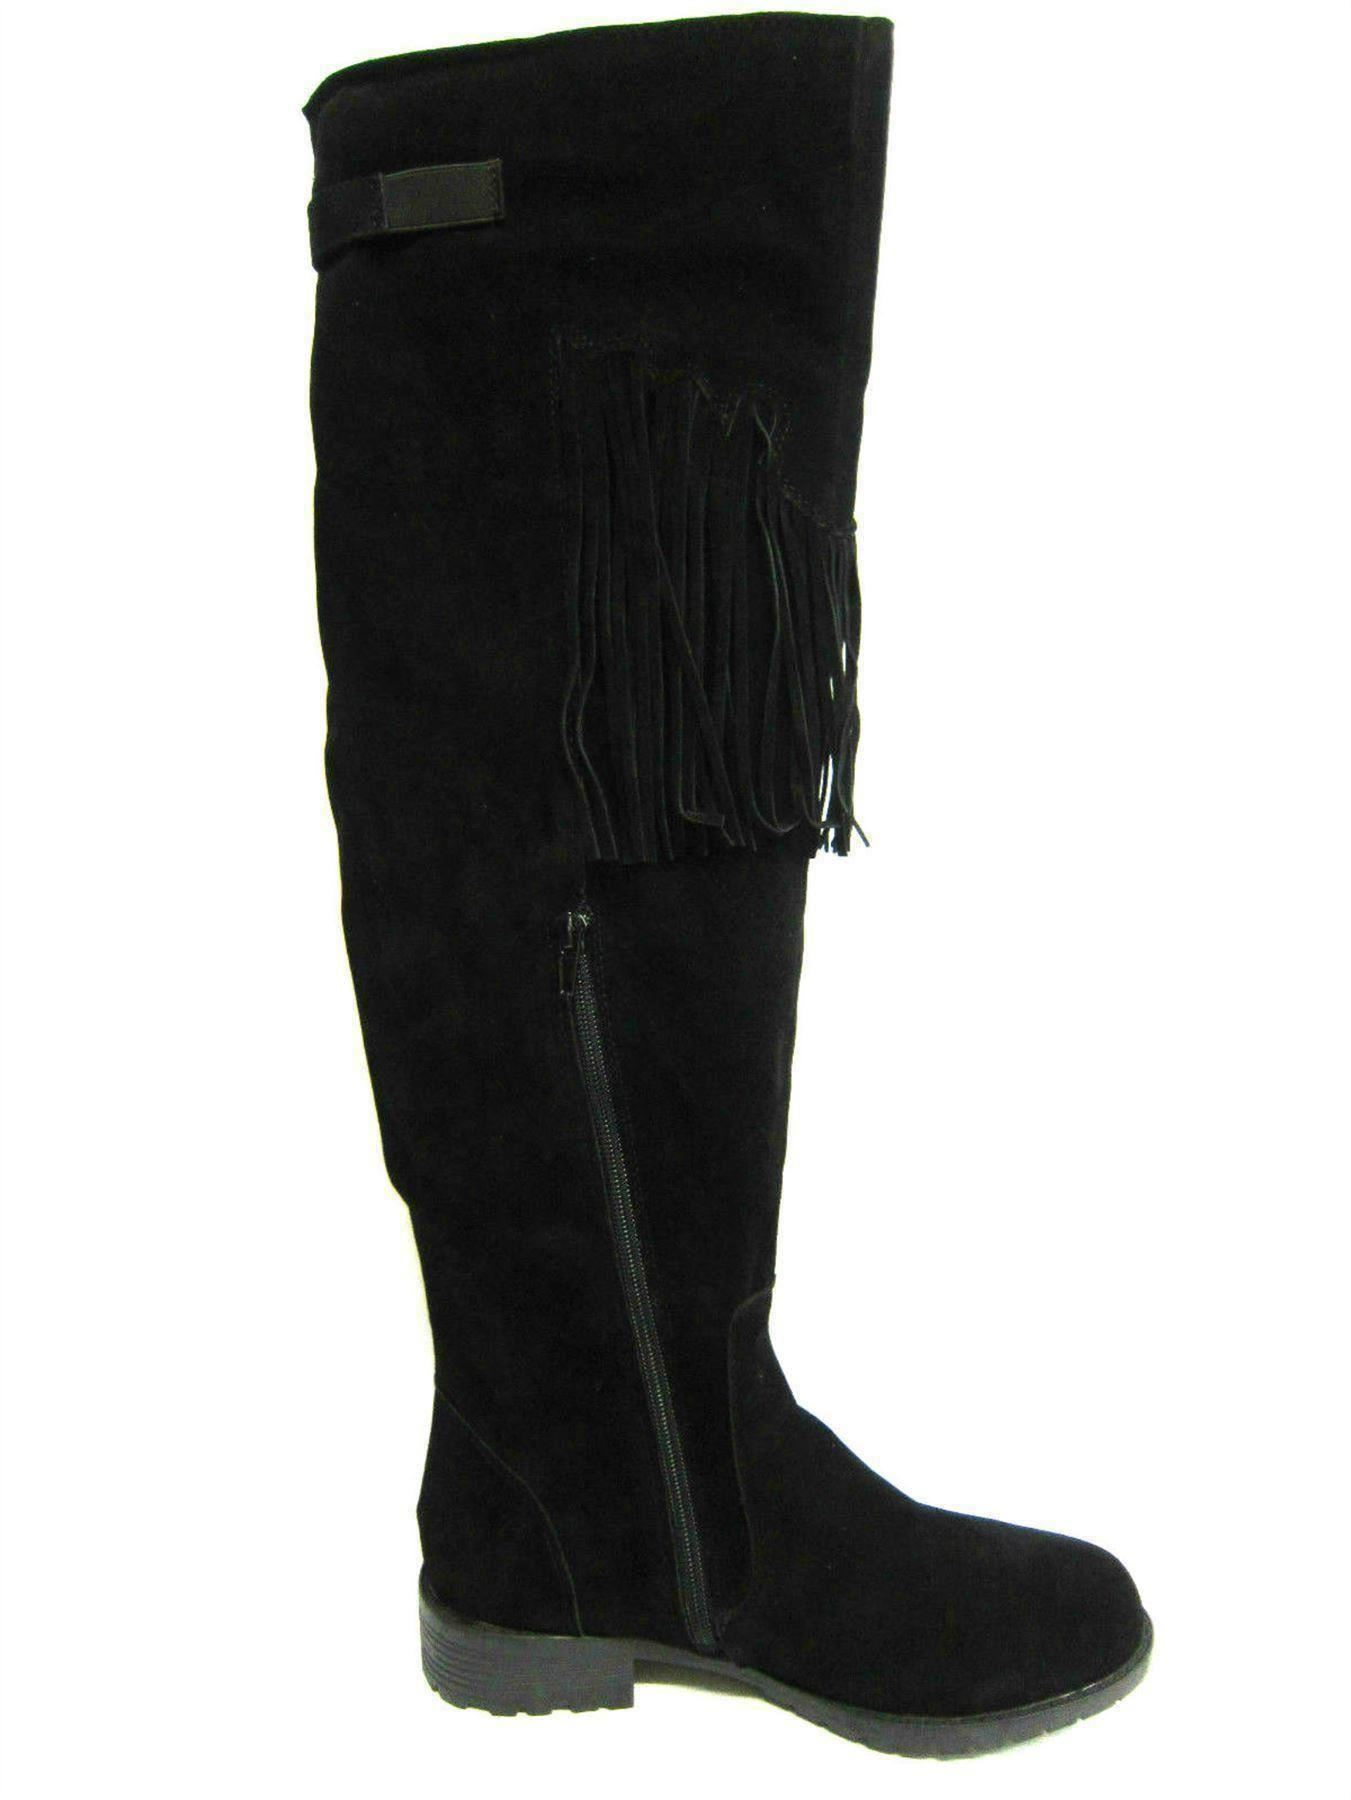 Ladies On Spot On Ladies Long Boots The Style - F50488 85b634